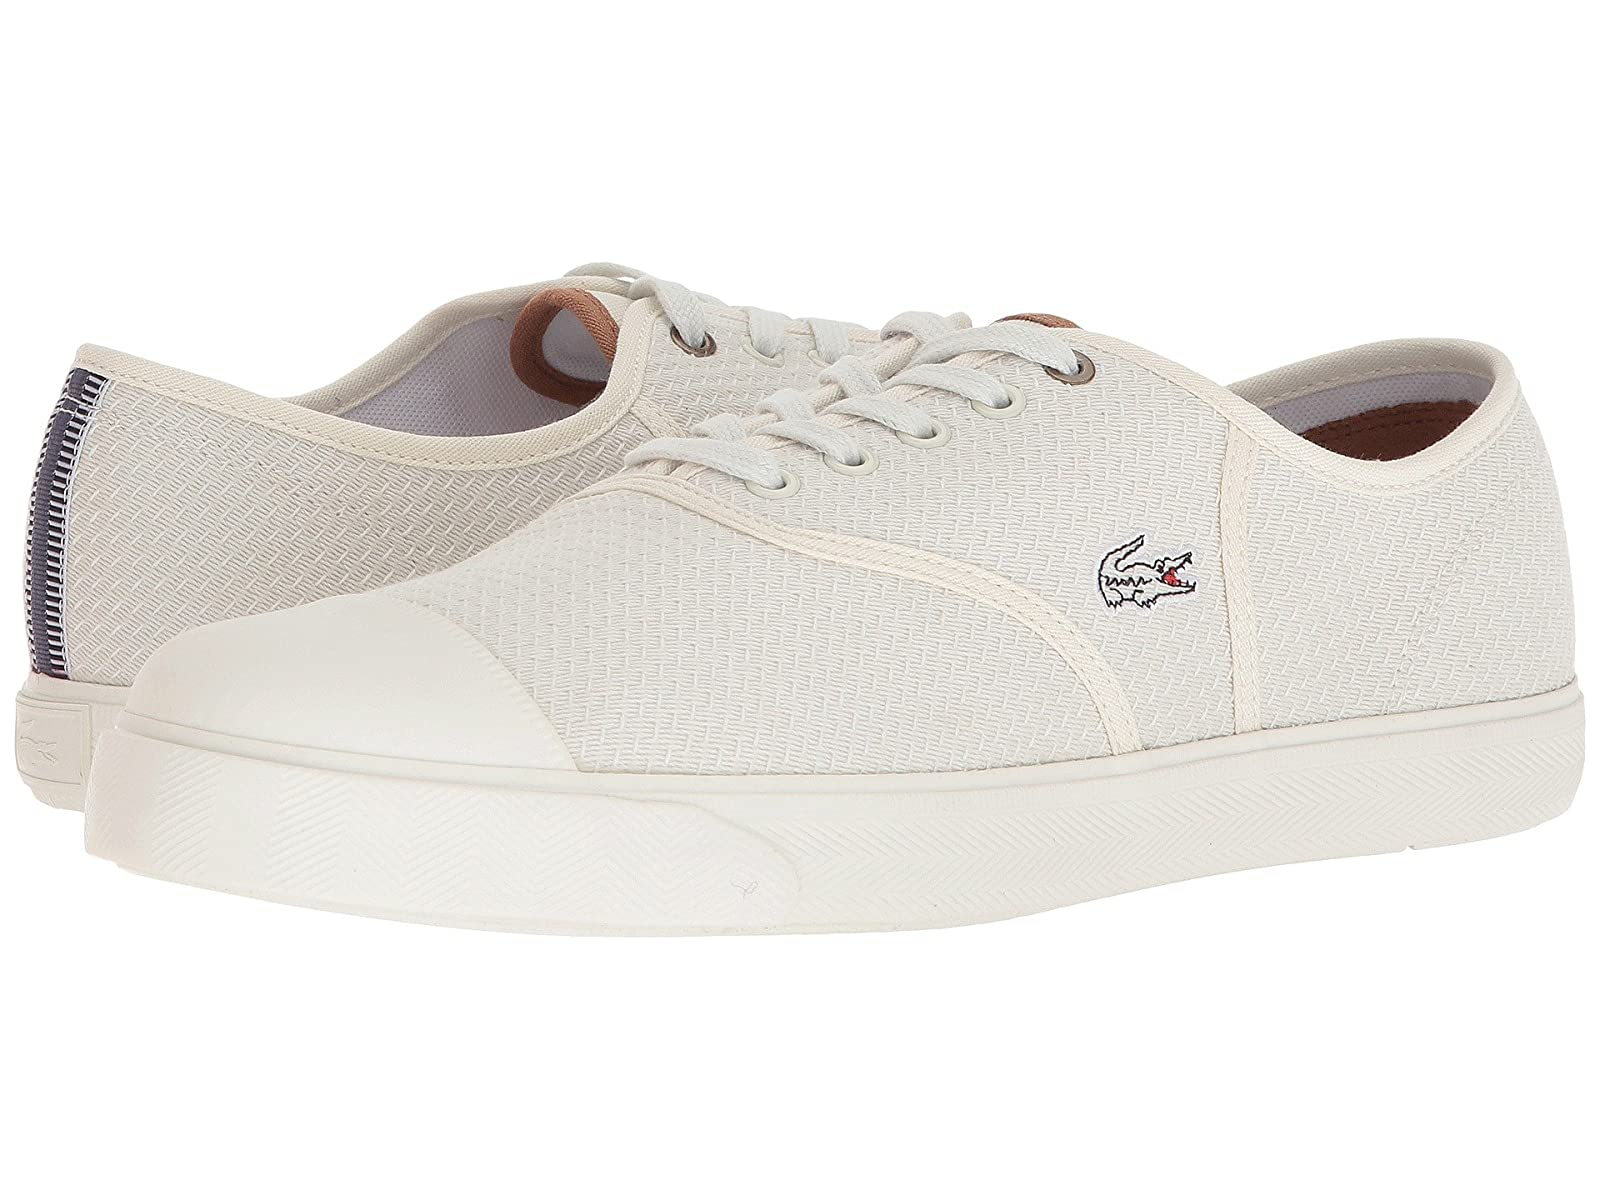 Lacoste Rene 118 1Cheap and distinctive eye-catching shoes